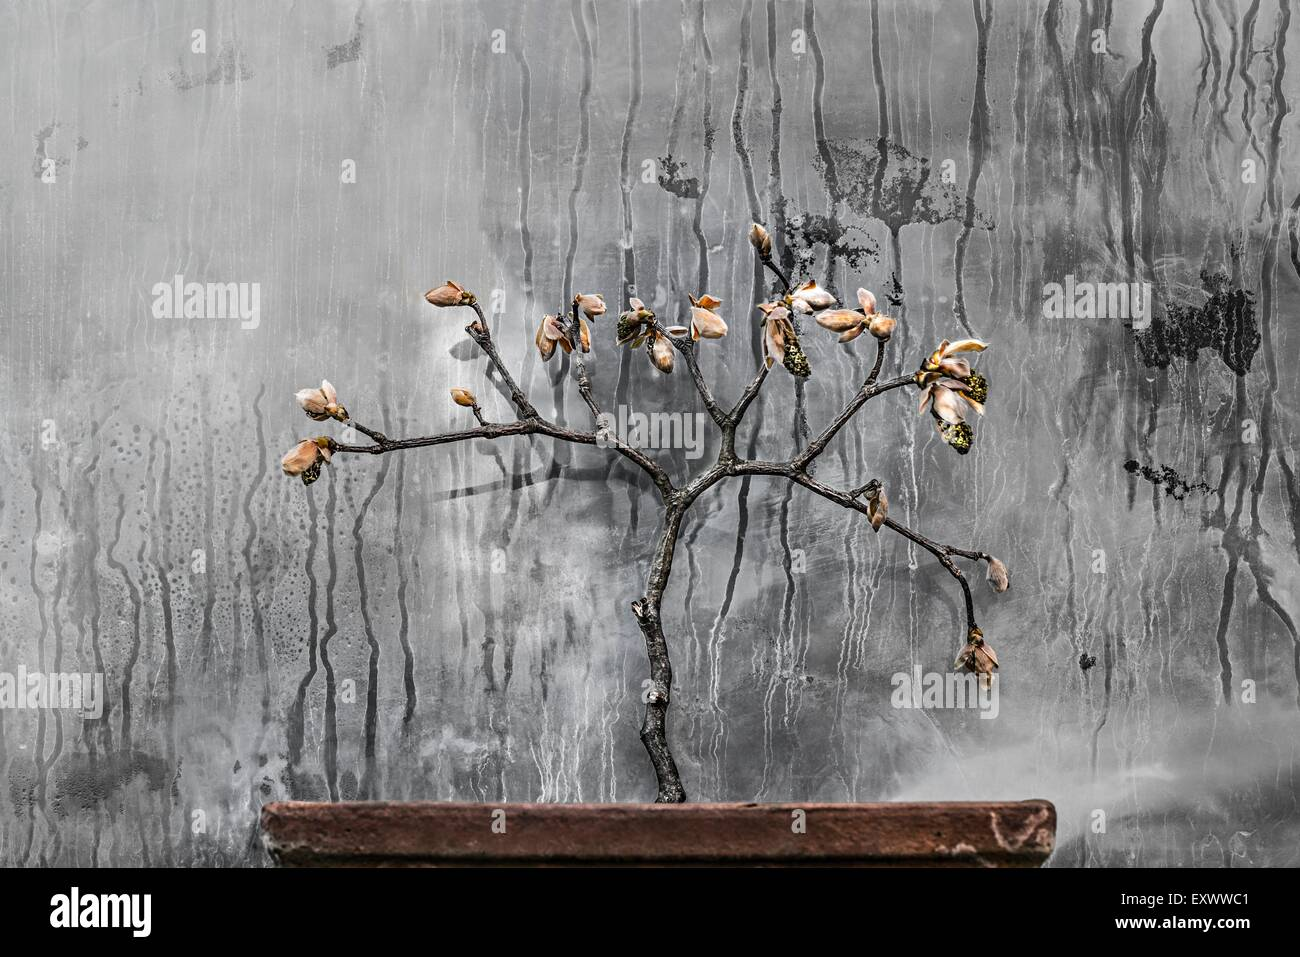 Maple twig at window pane - Stock Image